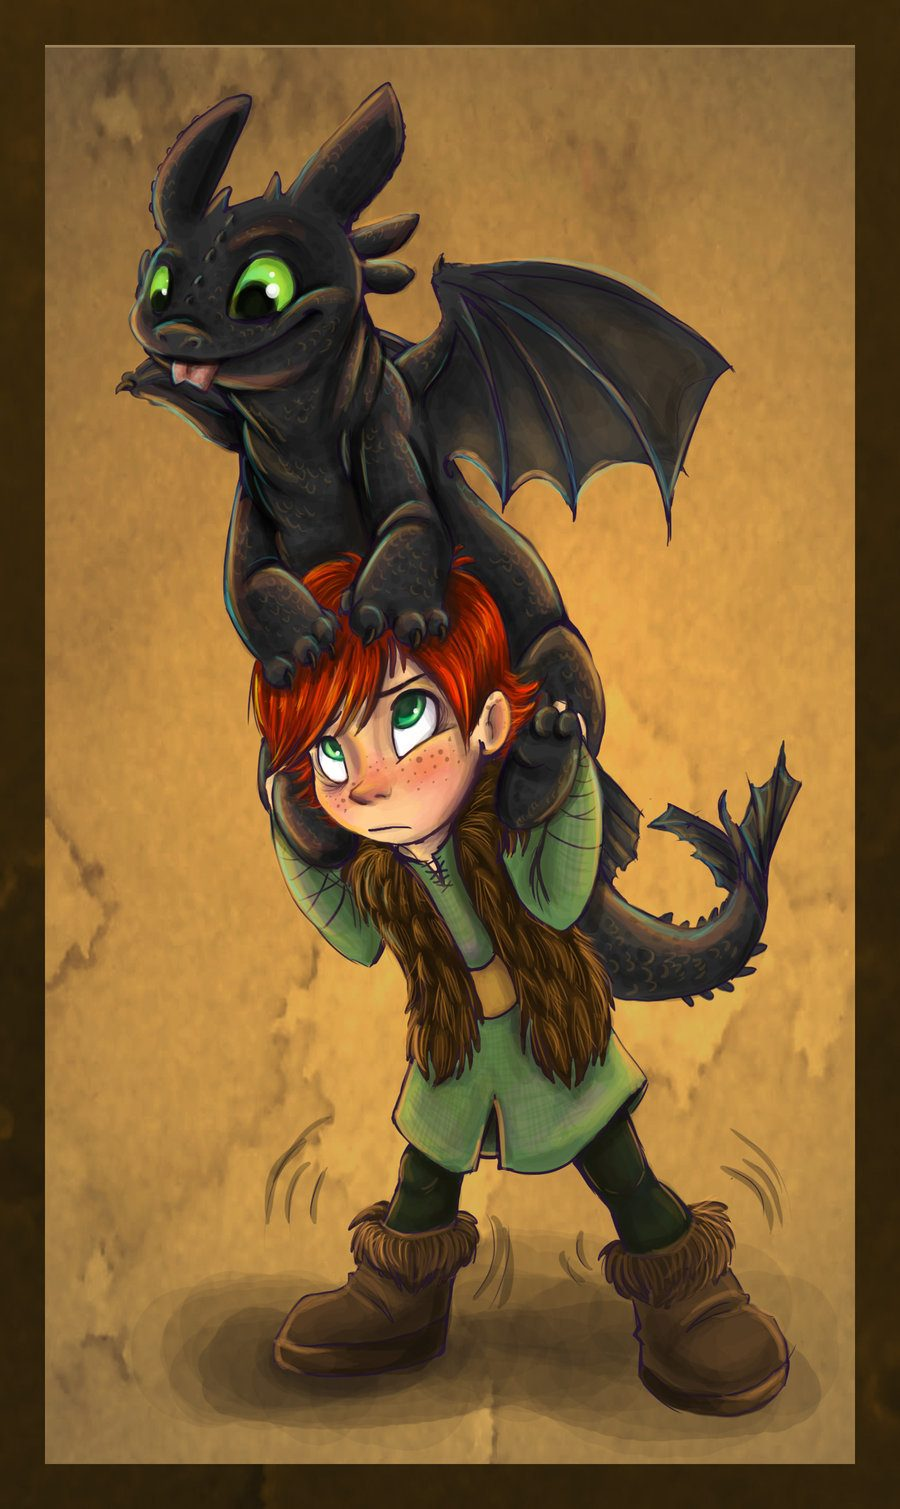 Hiccup_and_Toothless_Chibi_by_sharpie91.jpg